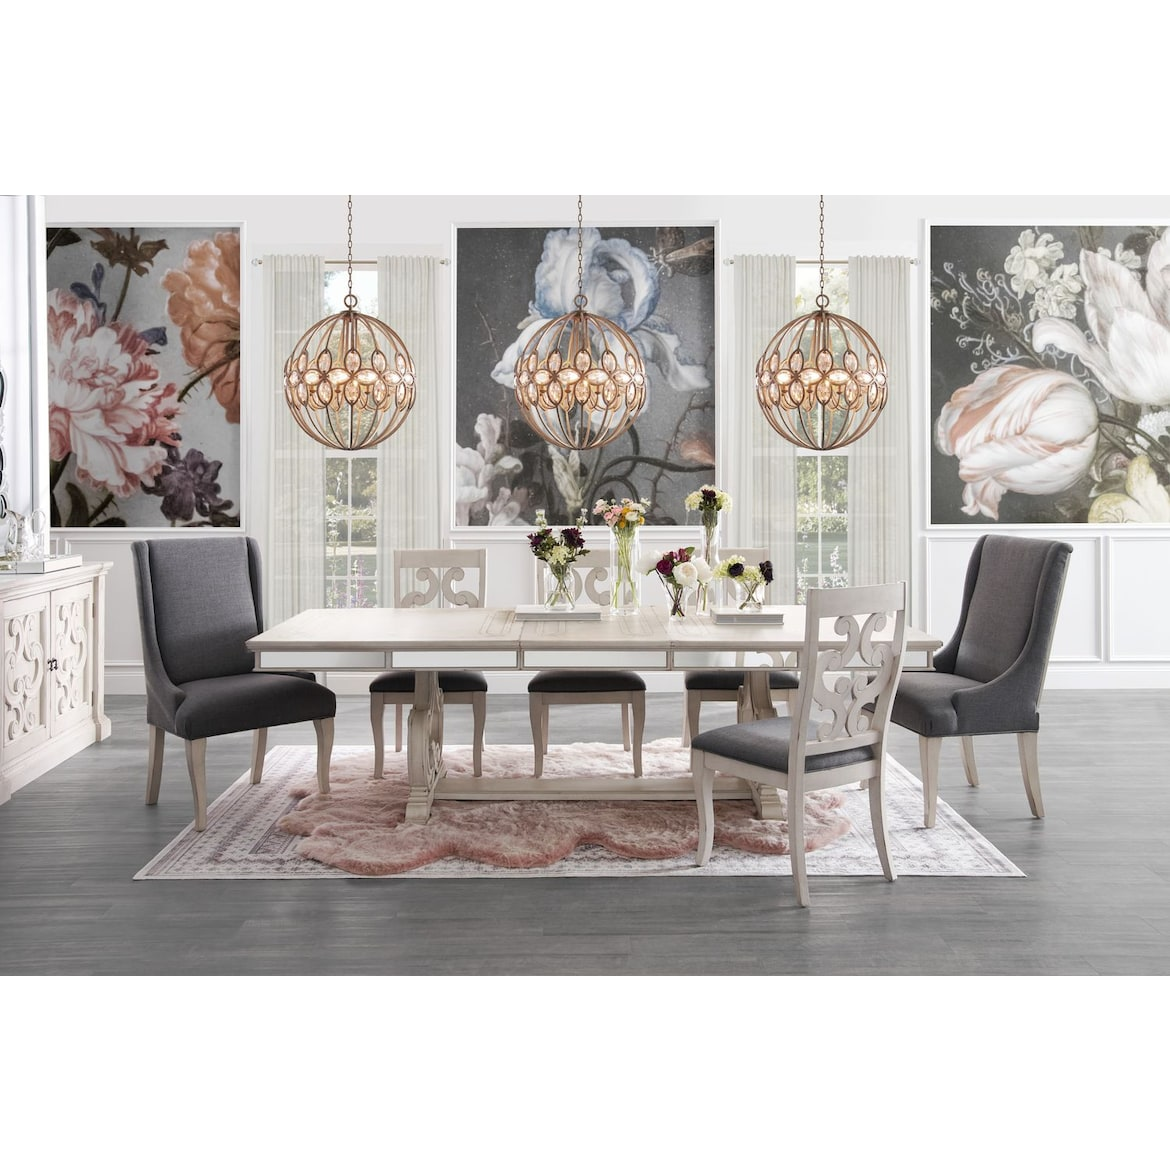 American First Finance Furniture Stores Merced: Athena Dining Table, 4 Dining Chairs And 2 Host Chairs